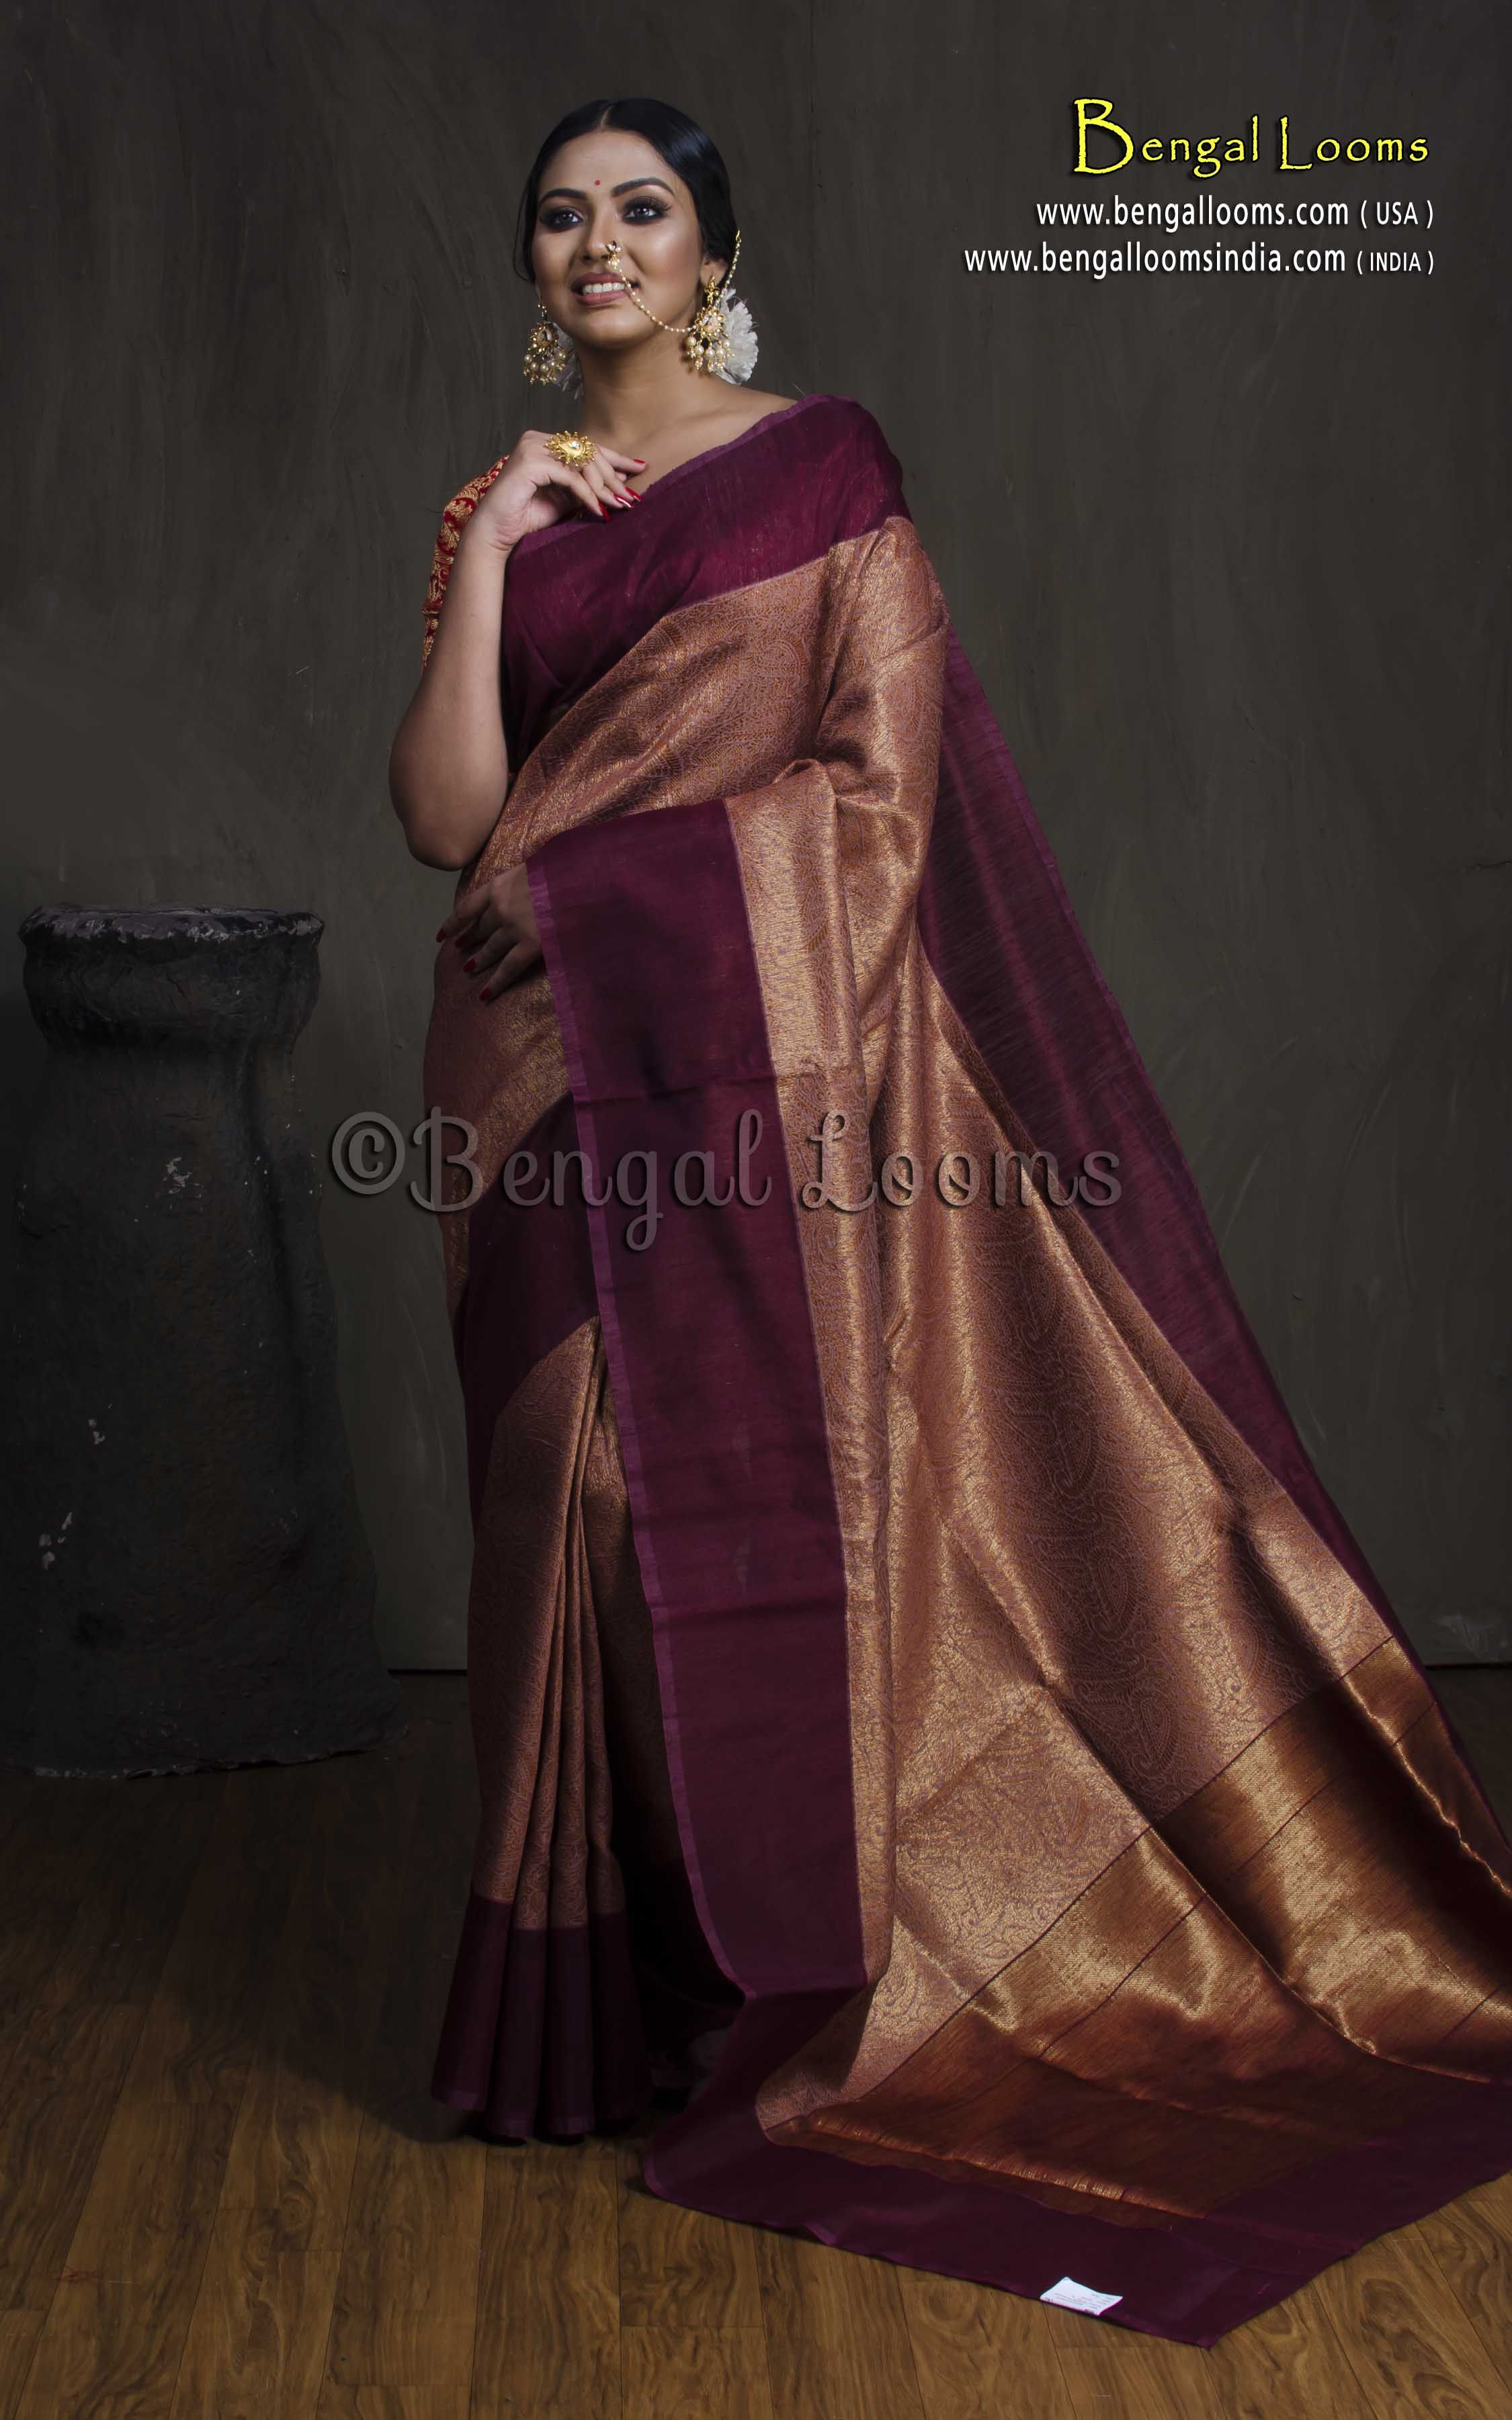 53e2aeae76d36 Brocade Tussar Banarasi Saree in Copper and Maroon